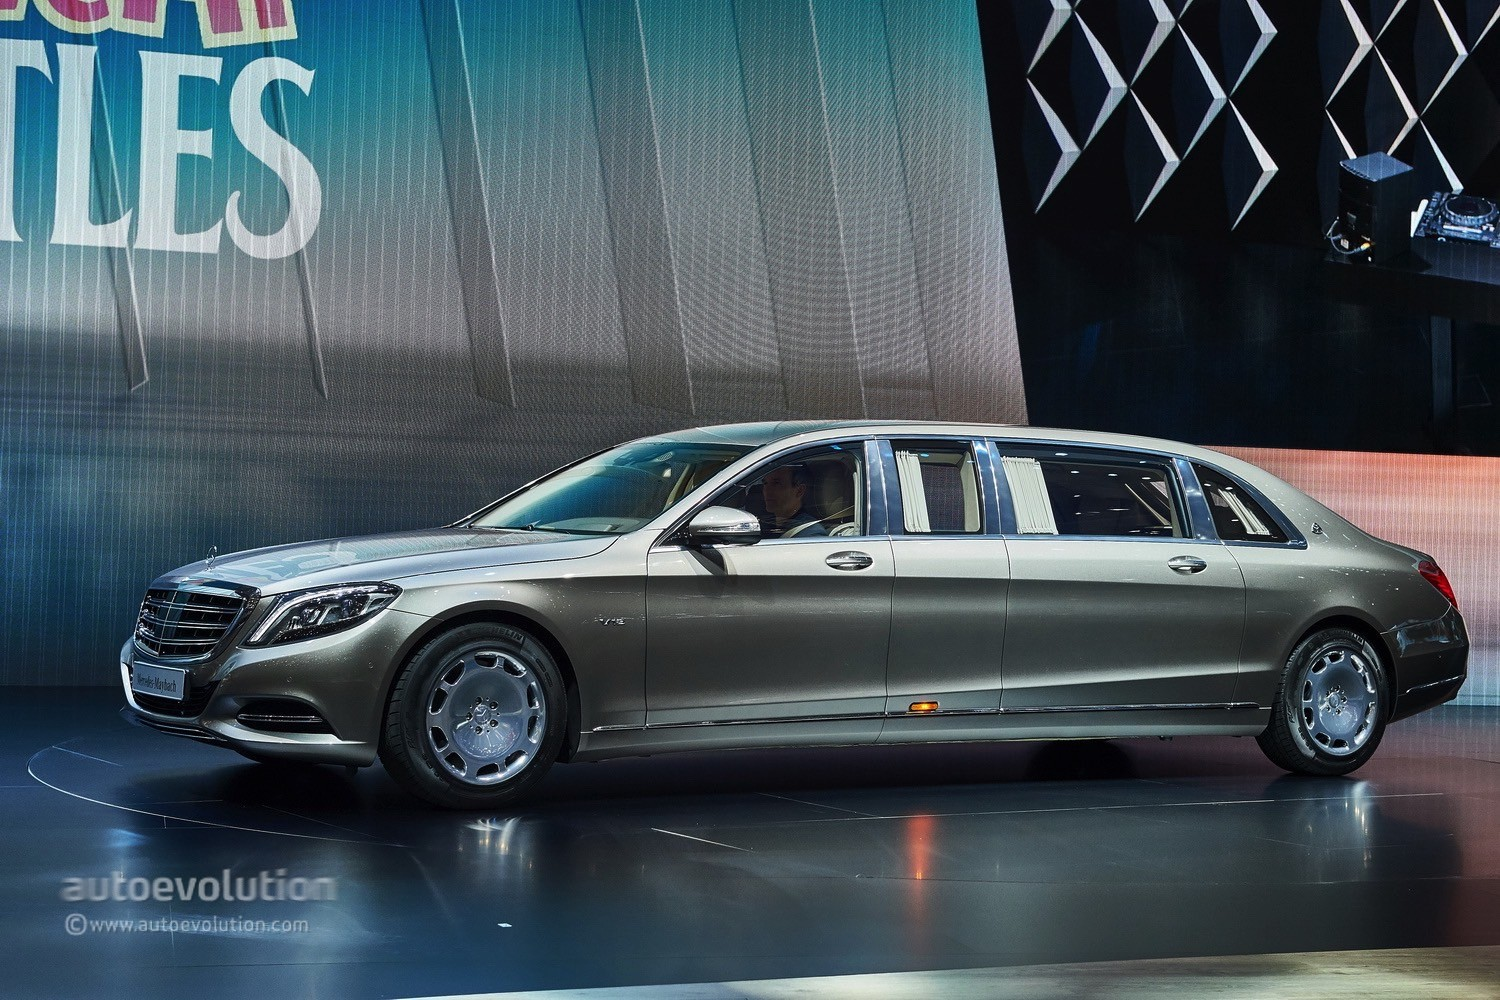 mercedes maybach pullman s600 bursts opulence in geneva autoevolution. Black Bedroom Furniture Sets. Home Design Ideas